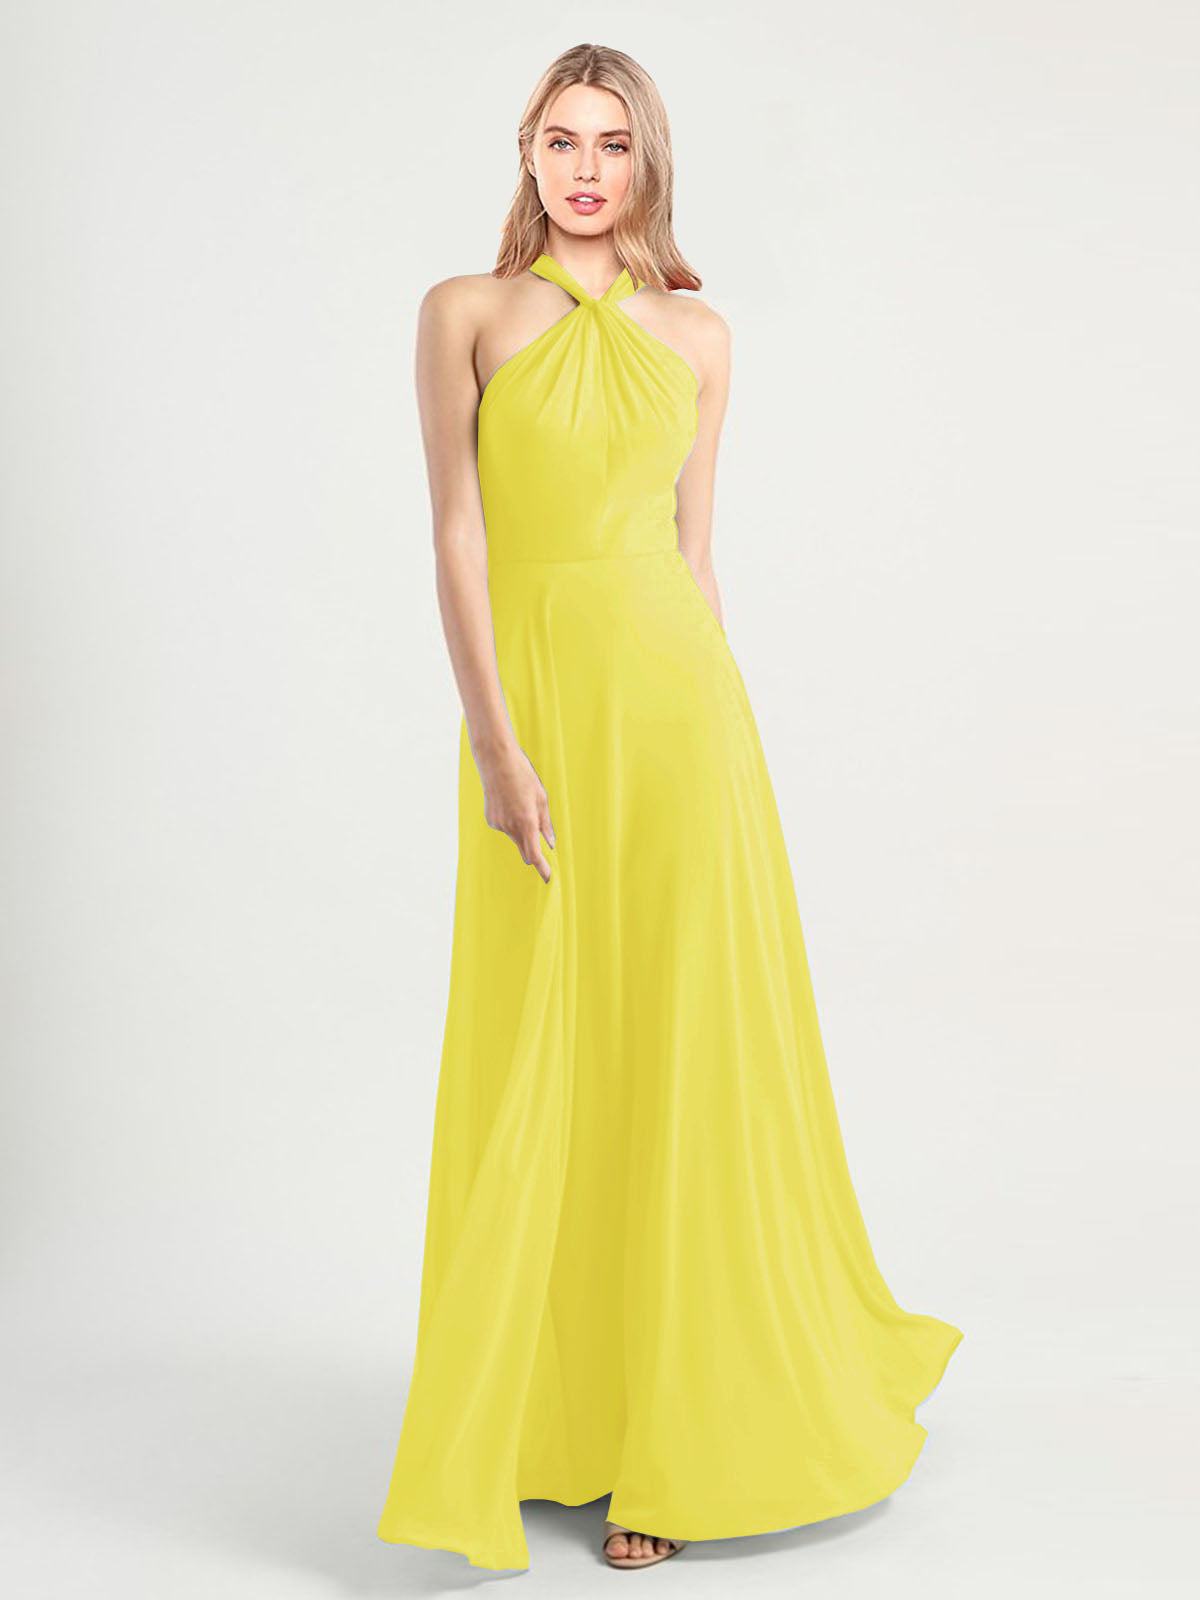 Long A-Line High Neck, Halter Sleeveless Yellow Chiffon Bridesmaid Dress Yoli